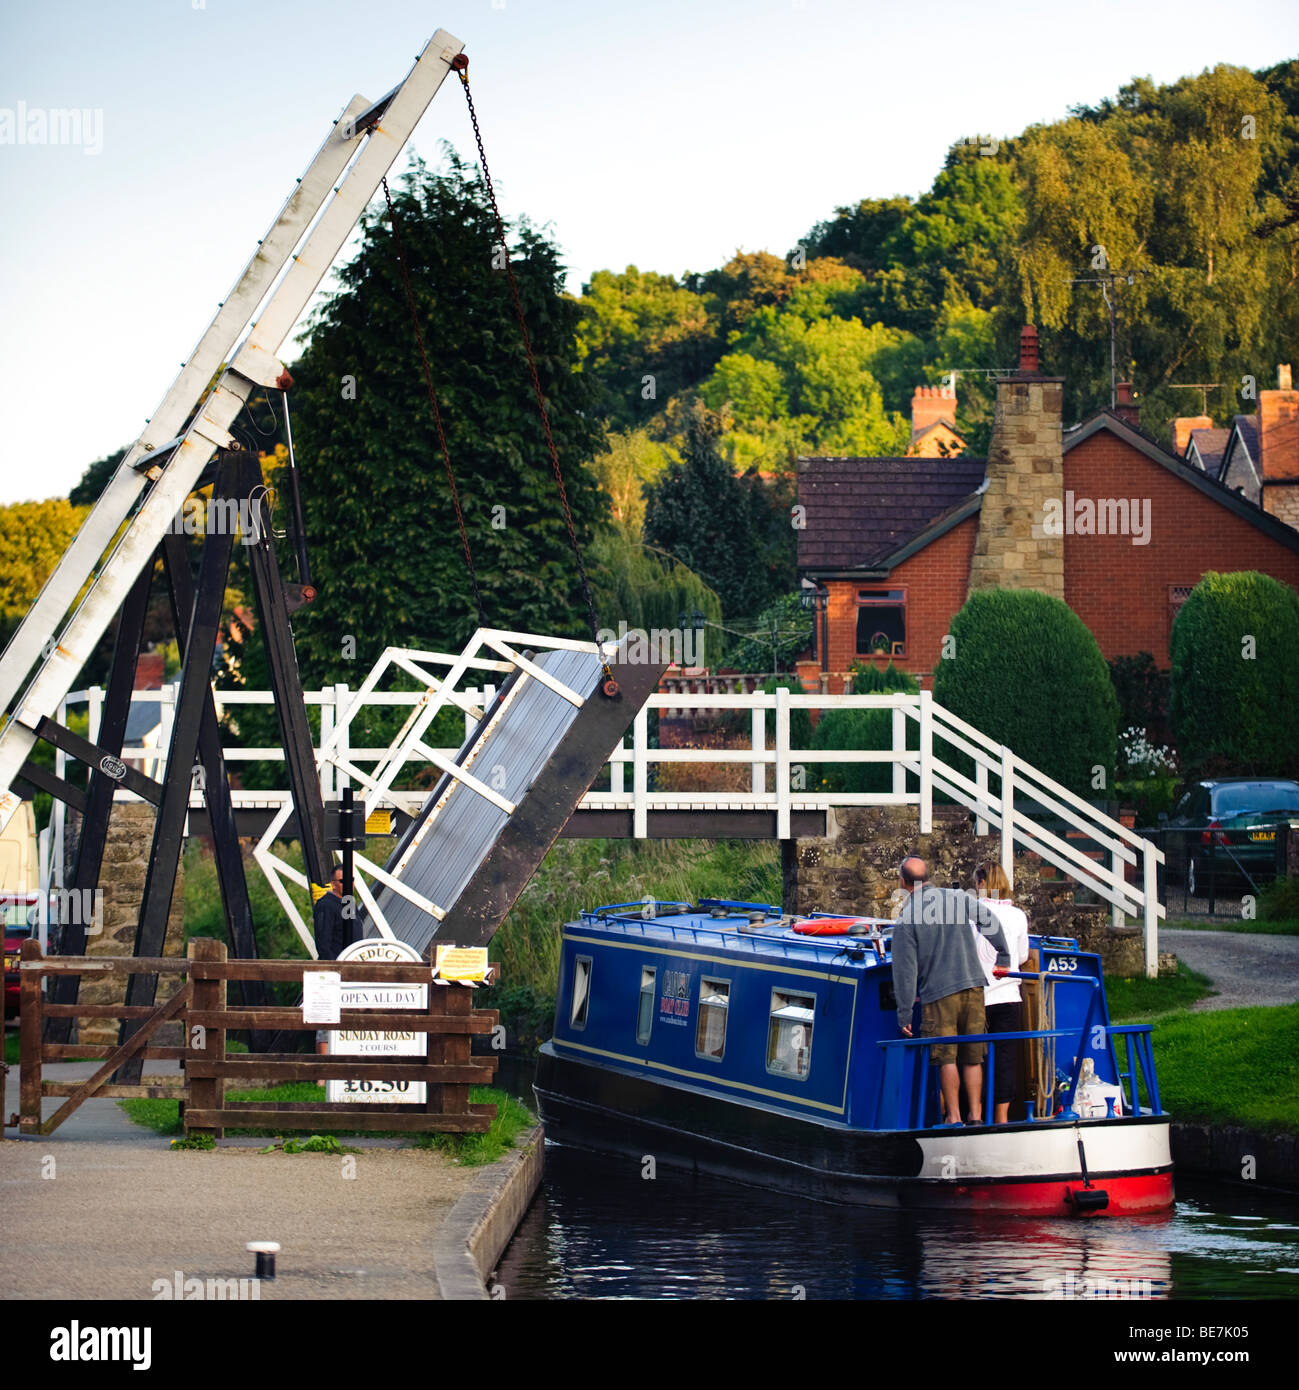 Narrowboat passing under a tilting lifting bridge on the Llangollen Canal, North wales UK - Stock Image